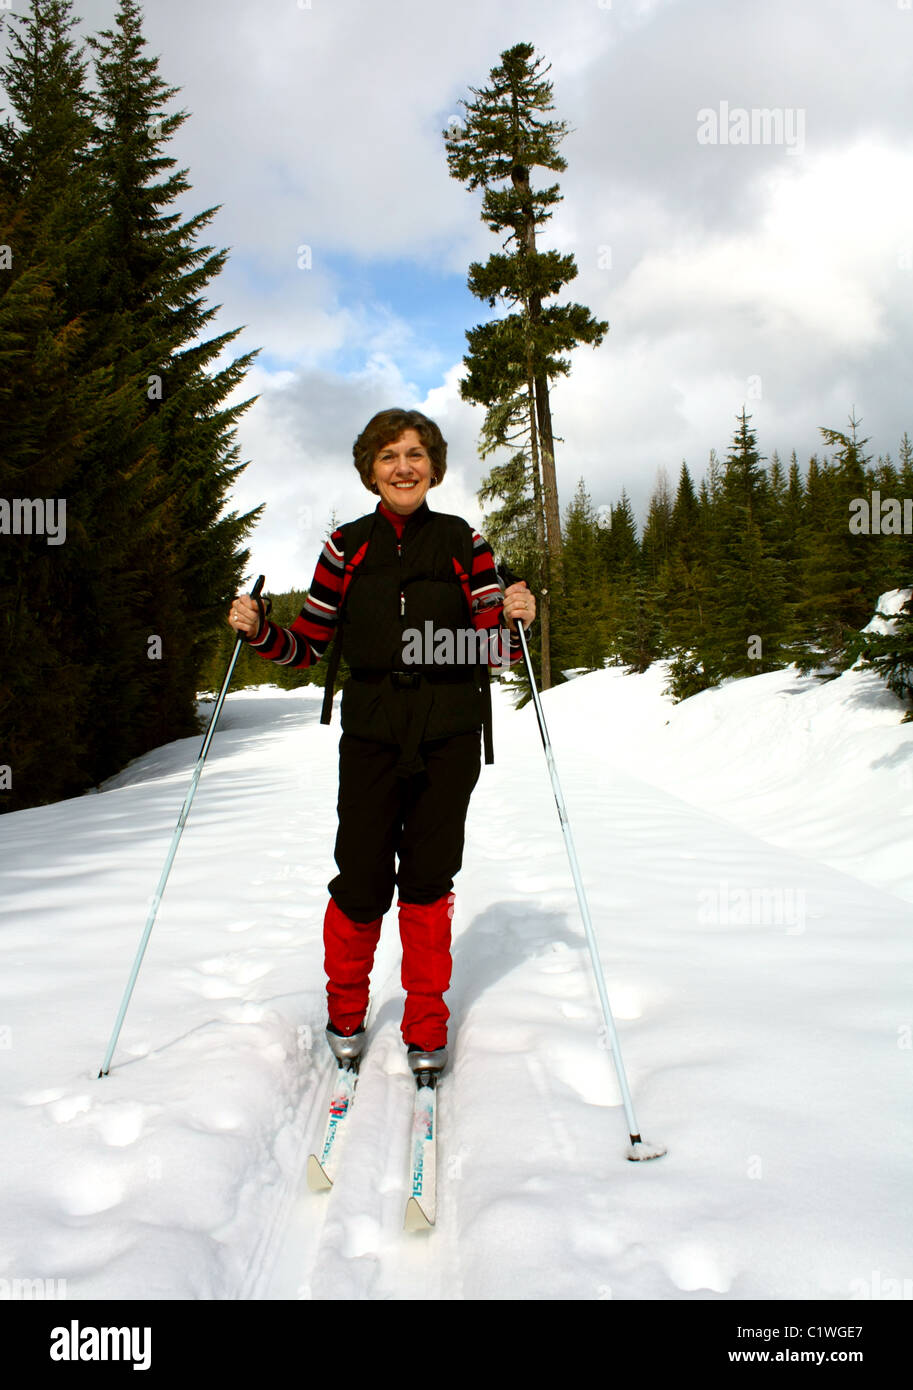 40,624.03353 Woman dressed in black and red cross-country skiing up a sunny snow covered conifer forest backcountry Stock Photo